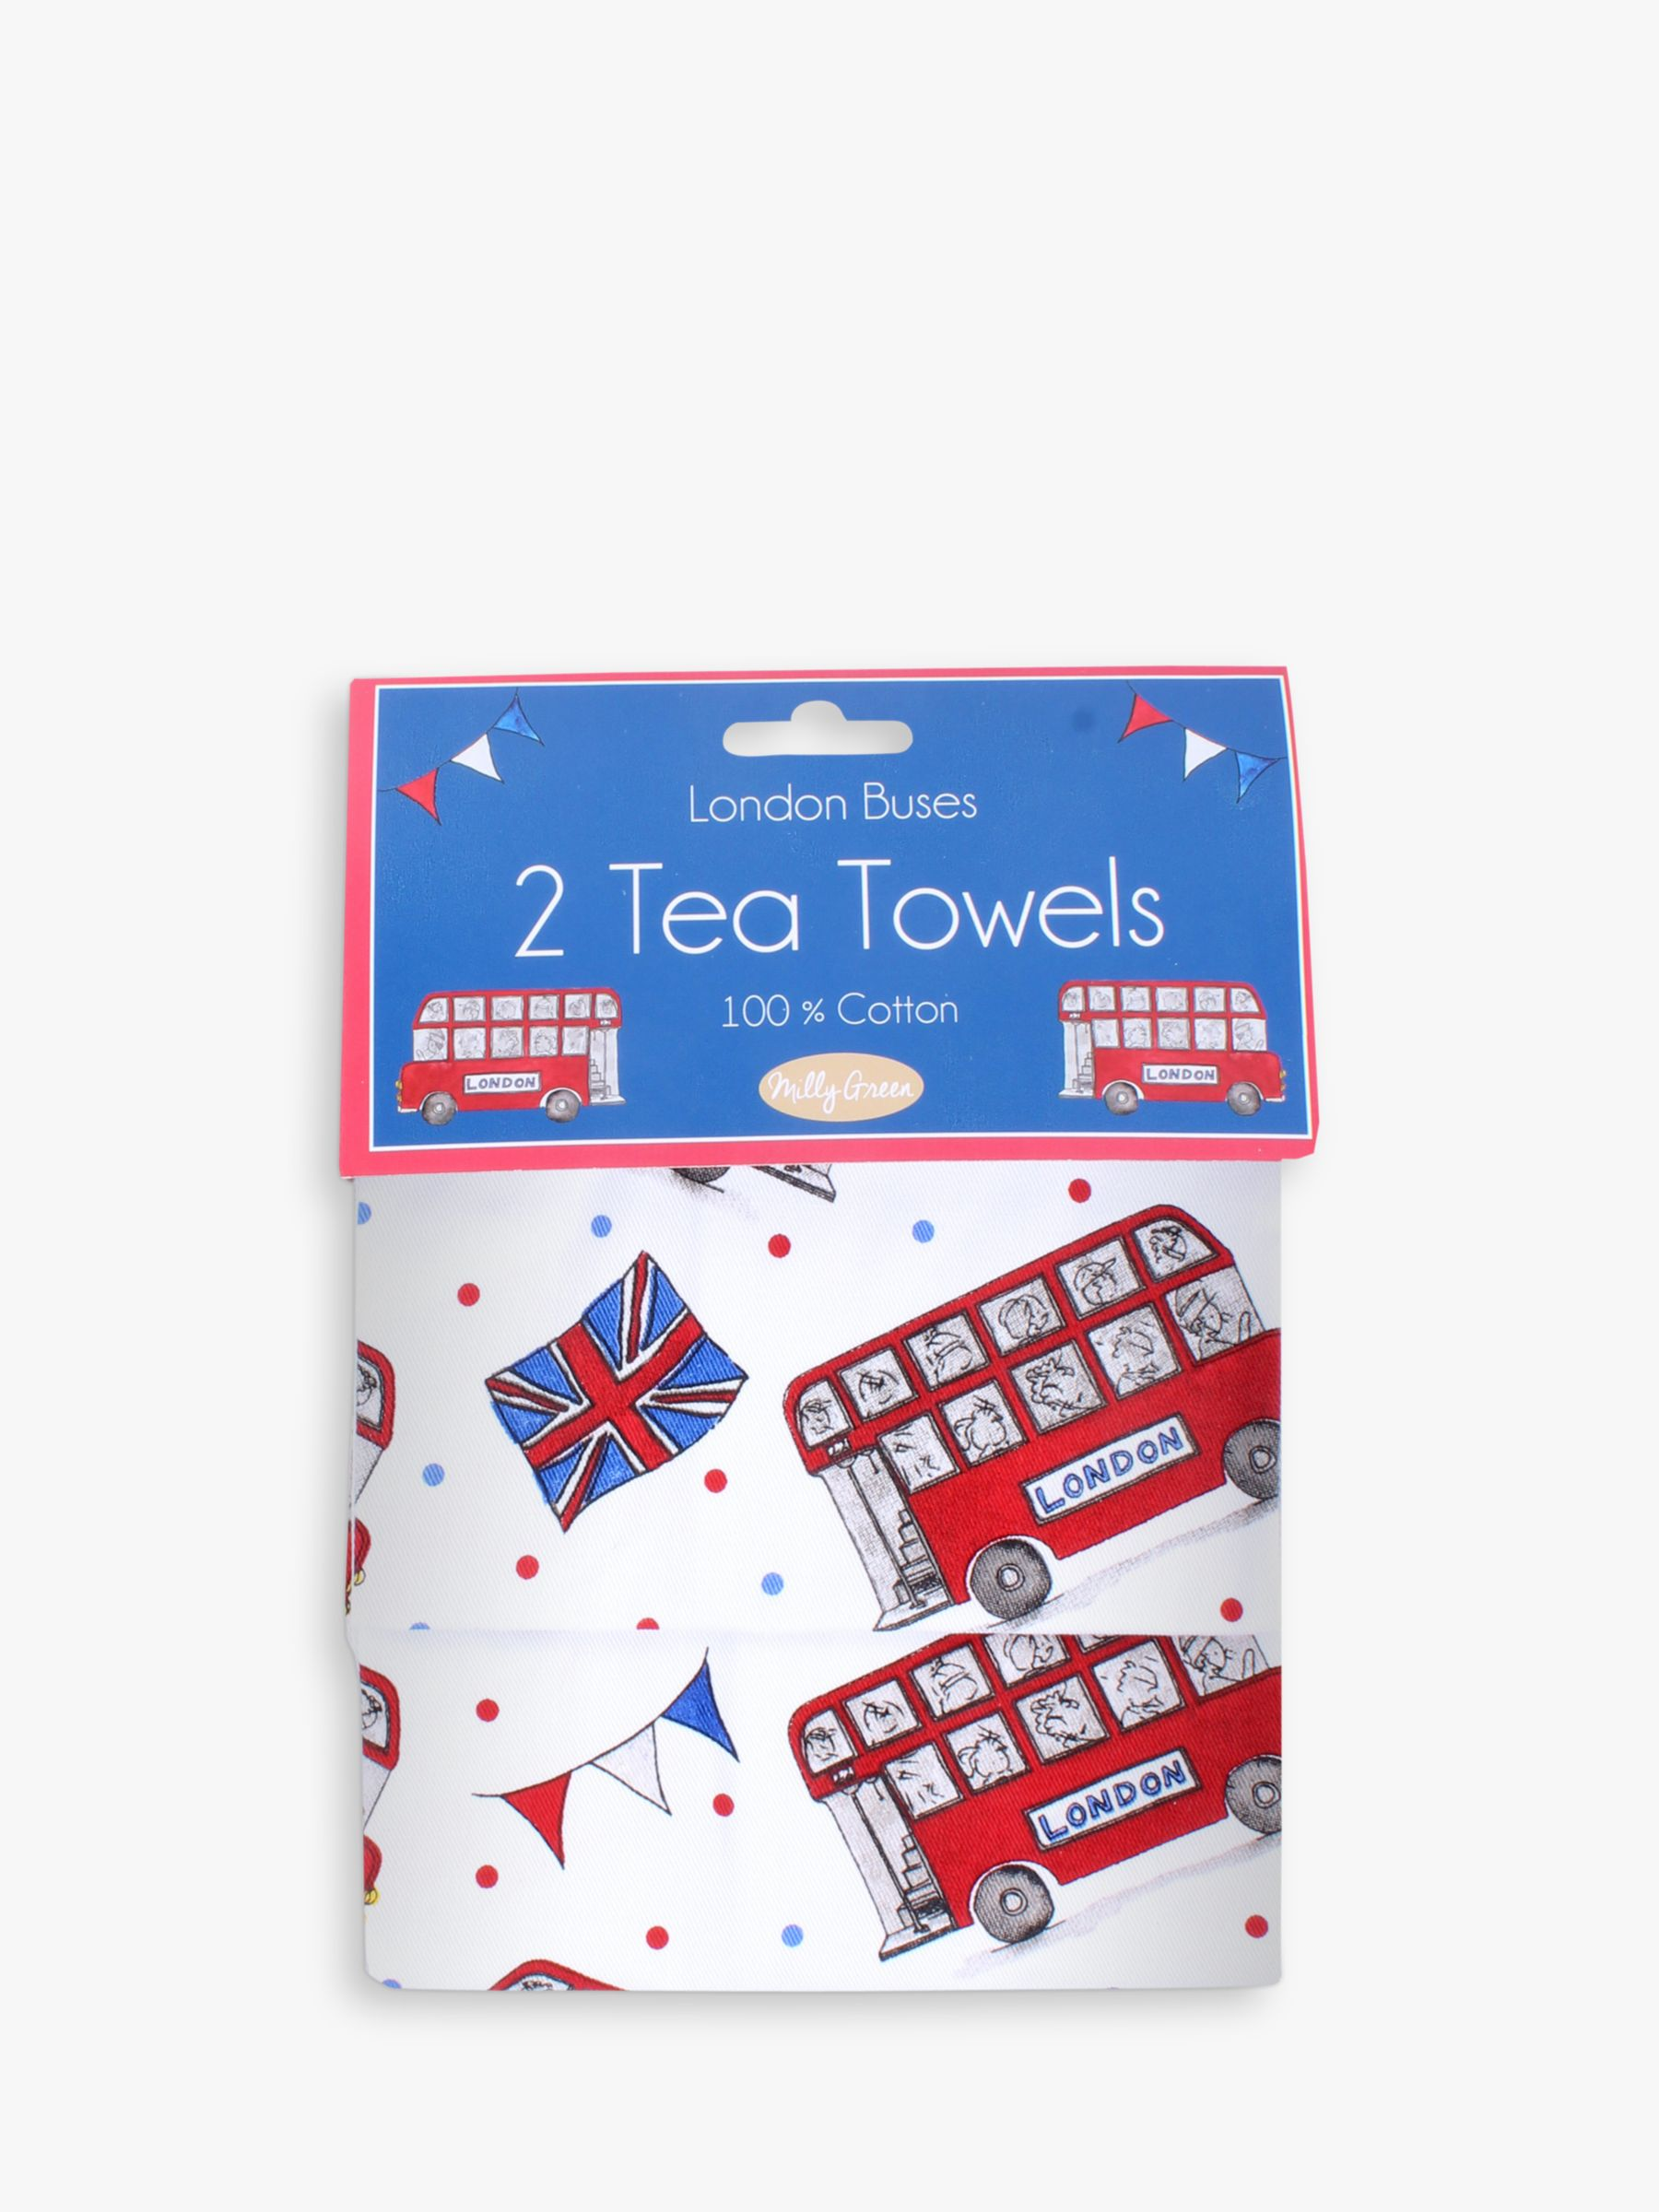 Milly Green Milly Green Celebration of Britain London Cotton Tea Towels, Set of 2